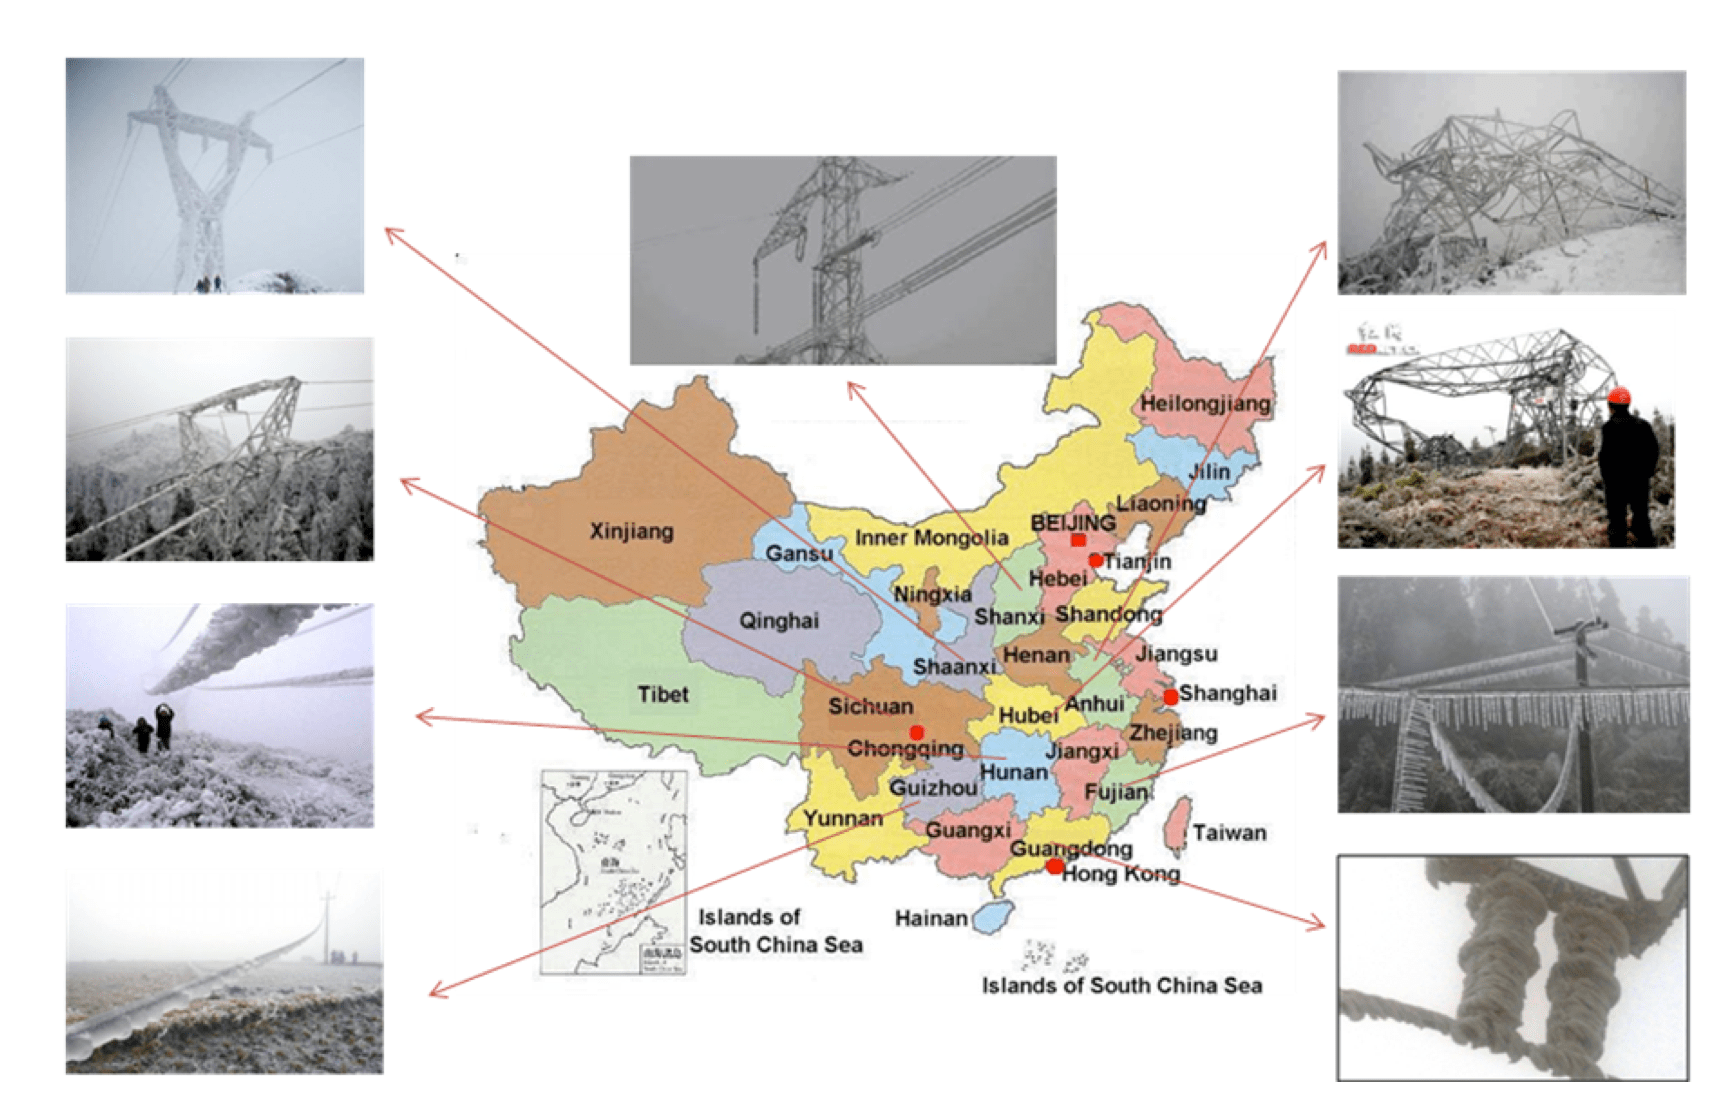 Fig. 1: Icing problems on transmission lines in China, 2008/9 ice accretion Semi-Conductive Coatings to Limit Ice Accretion on Insulators Screen Shot 2016 09 30 at 11